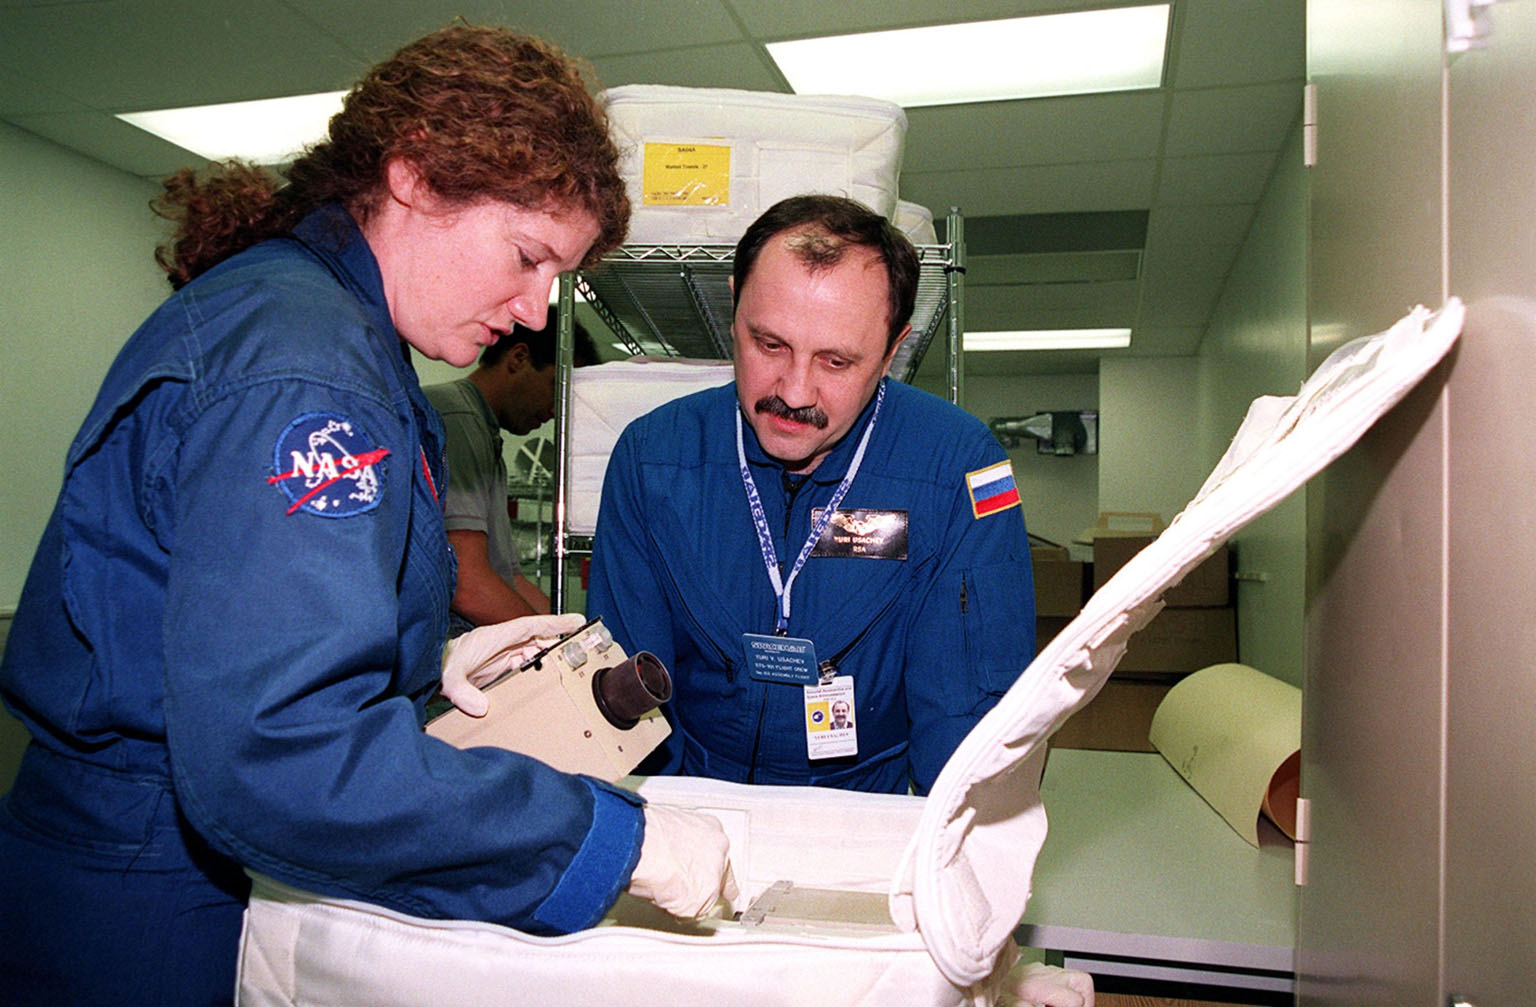 KENNEDY SPACE CENTER, FLA. -- As part of Crew Equipment Interface Test (CEIT) activities at SPACEHAB, in Cape Canaveral, Fla., STS-101 Mission Specialists Susan Helms and Yuri Usachev of Russia look over some of the equipment for their mission to the International Space Station. Other members of the crew taking part in the CEIT are Commander James Halsell, Pilot Scott Horowitz, and Mission Specialists Mary Ellen Weber, James Voss, and Jeffrey Williams. The STS-101 crew will be responsible for preparing the Space Station for the arrival of the Zvezda Service Module, expected to be launched by Russia in July 2000. Also, the crew will conduct one space walk to perform maintenance on the Space Station and deliver logistics and supplies. This will be the third assembly flight for the Space Station. STS-101 is scheduled to launch no earlier than April 13 from Launch Pad 39A